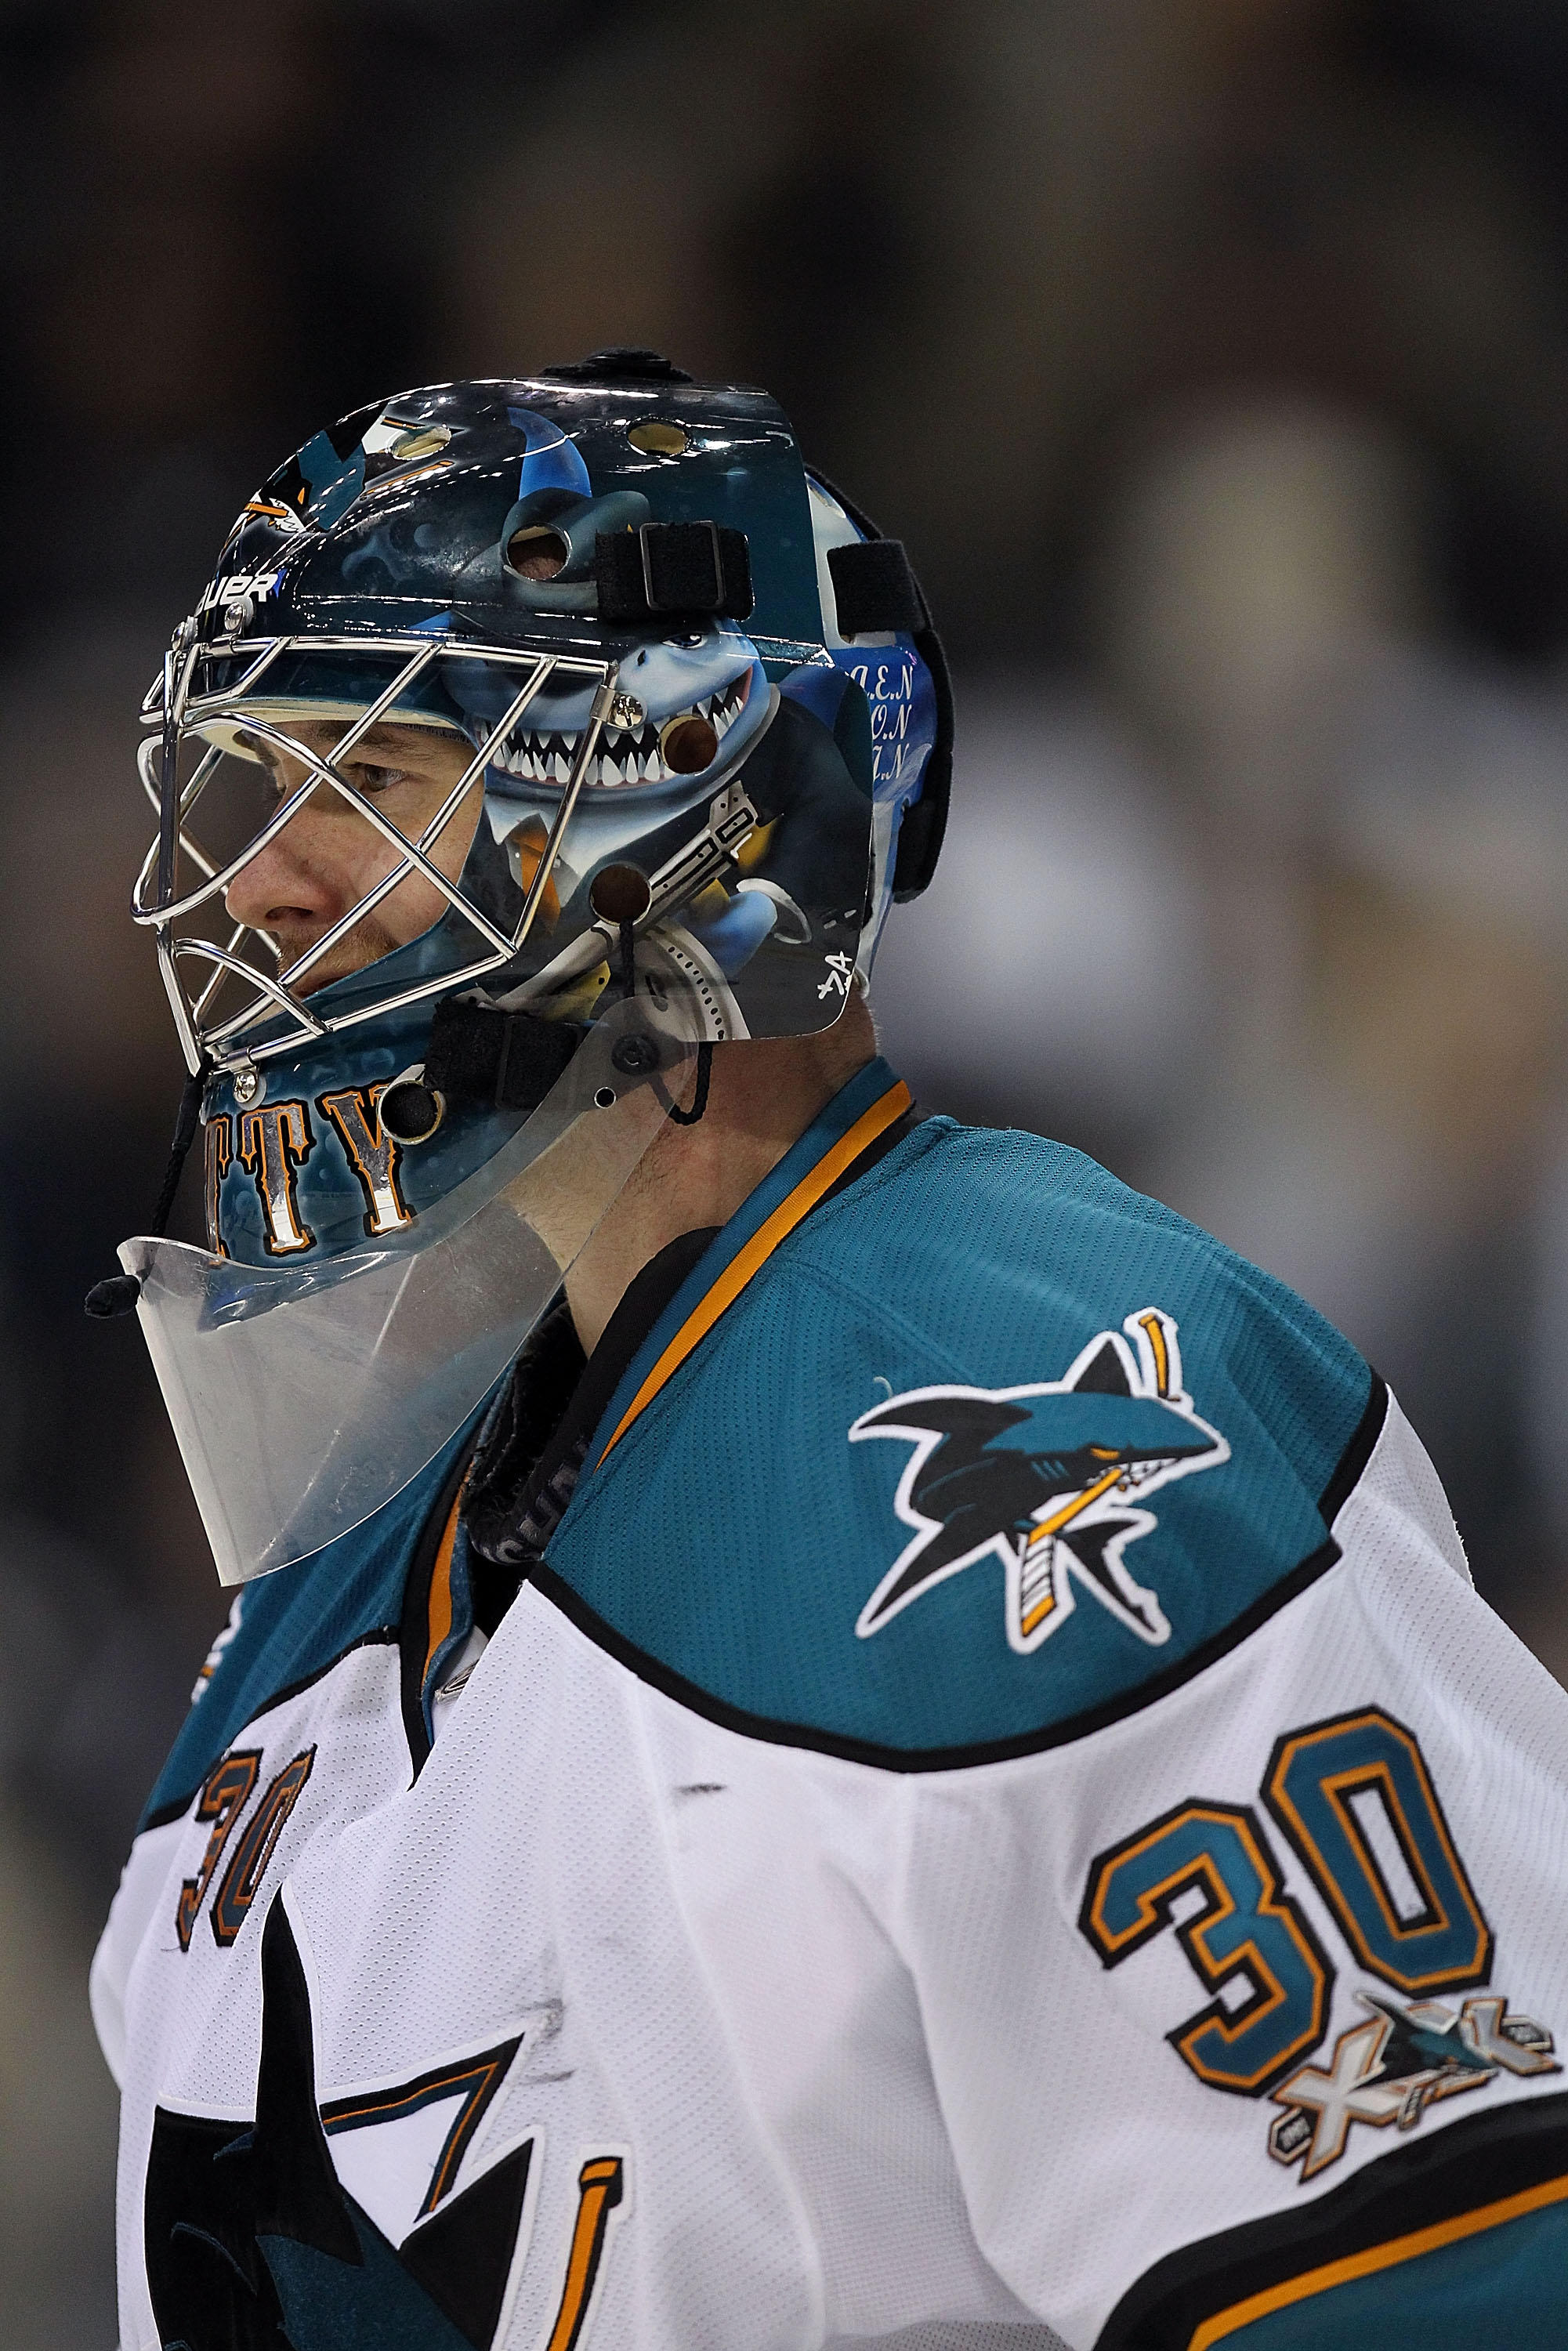 DALLAS, TX - DECEMBER 16:  Goaltender Antero Niittymaki #30 of the San Jose Sharks in goal against the Dallas Stars at American Airlines Center on December 16, 2010 in Dallas, Texas.  (Photo by Ronald Martinez/Getty Images)